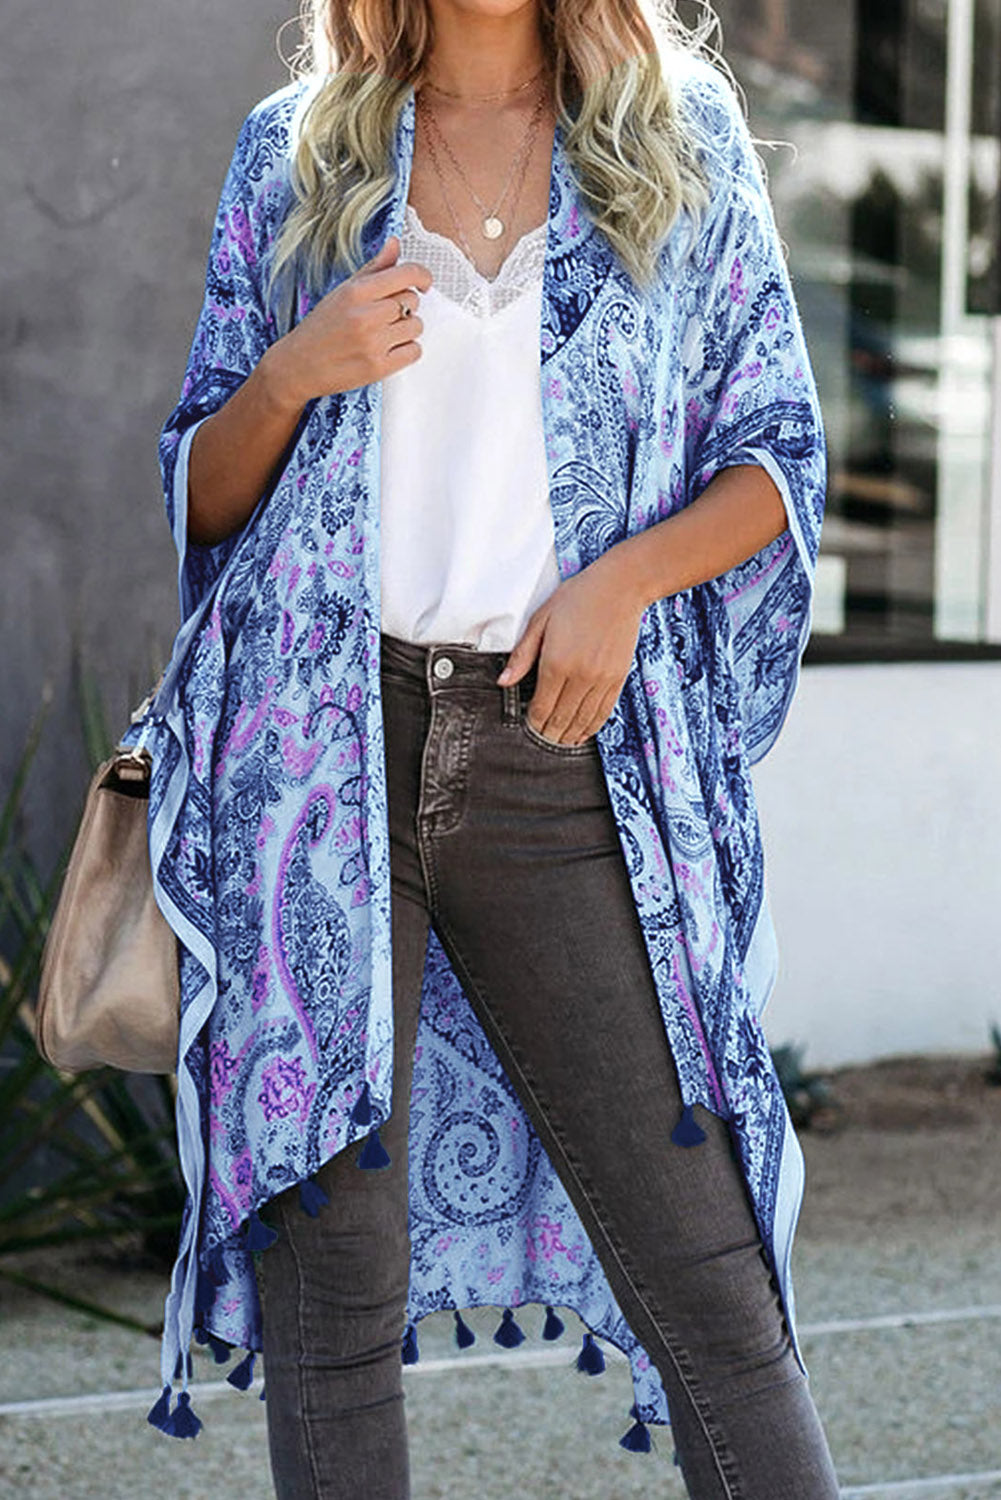 Sky Blue Boho Paisley Print Kimono Beach Cover up with Tassel Beach Dresses Discount Designer Fashion Clothes Shoes Bags Women Men Kids Children Black Owned Business